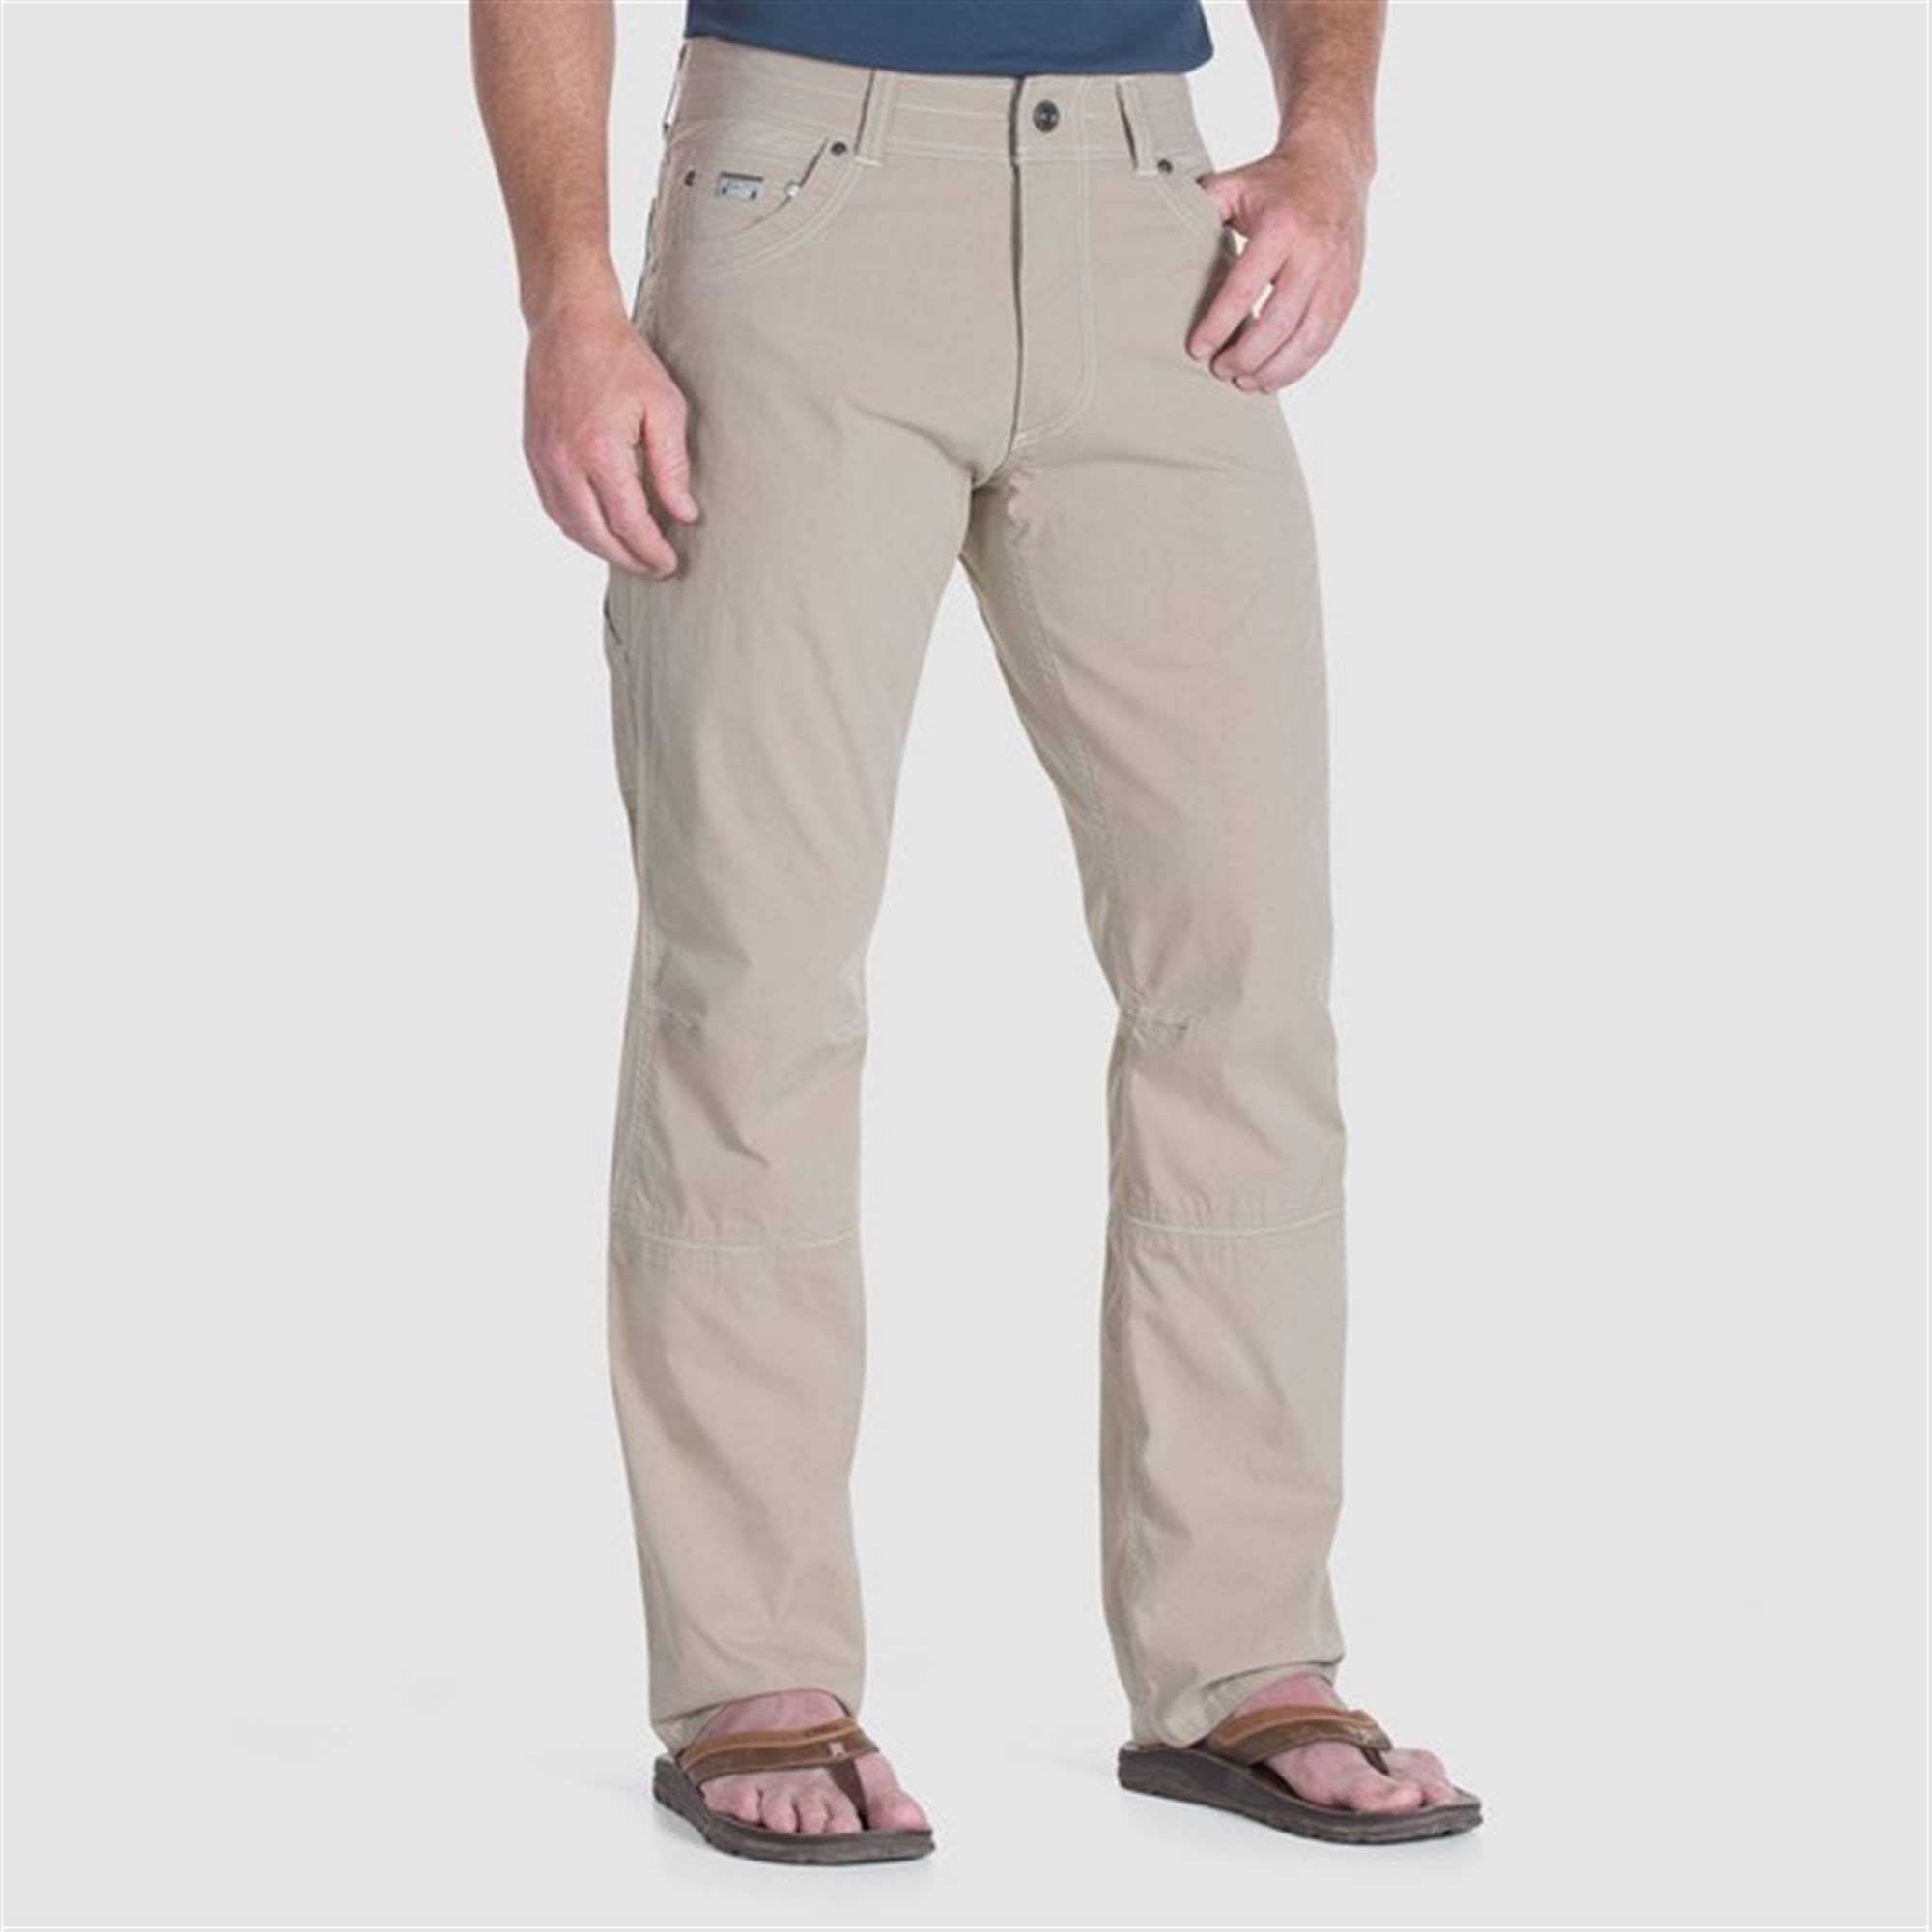 Kuhl Men's Radikl Pants - Desert Khaki, 36, Regular